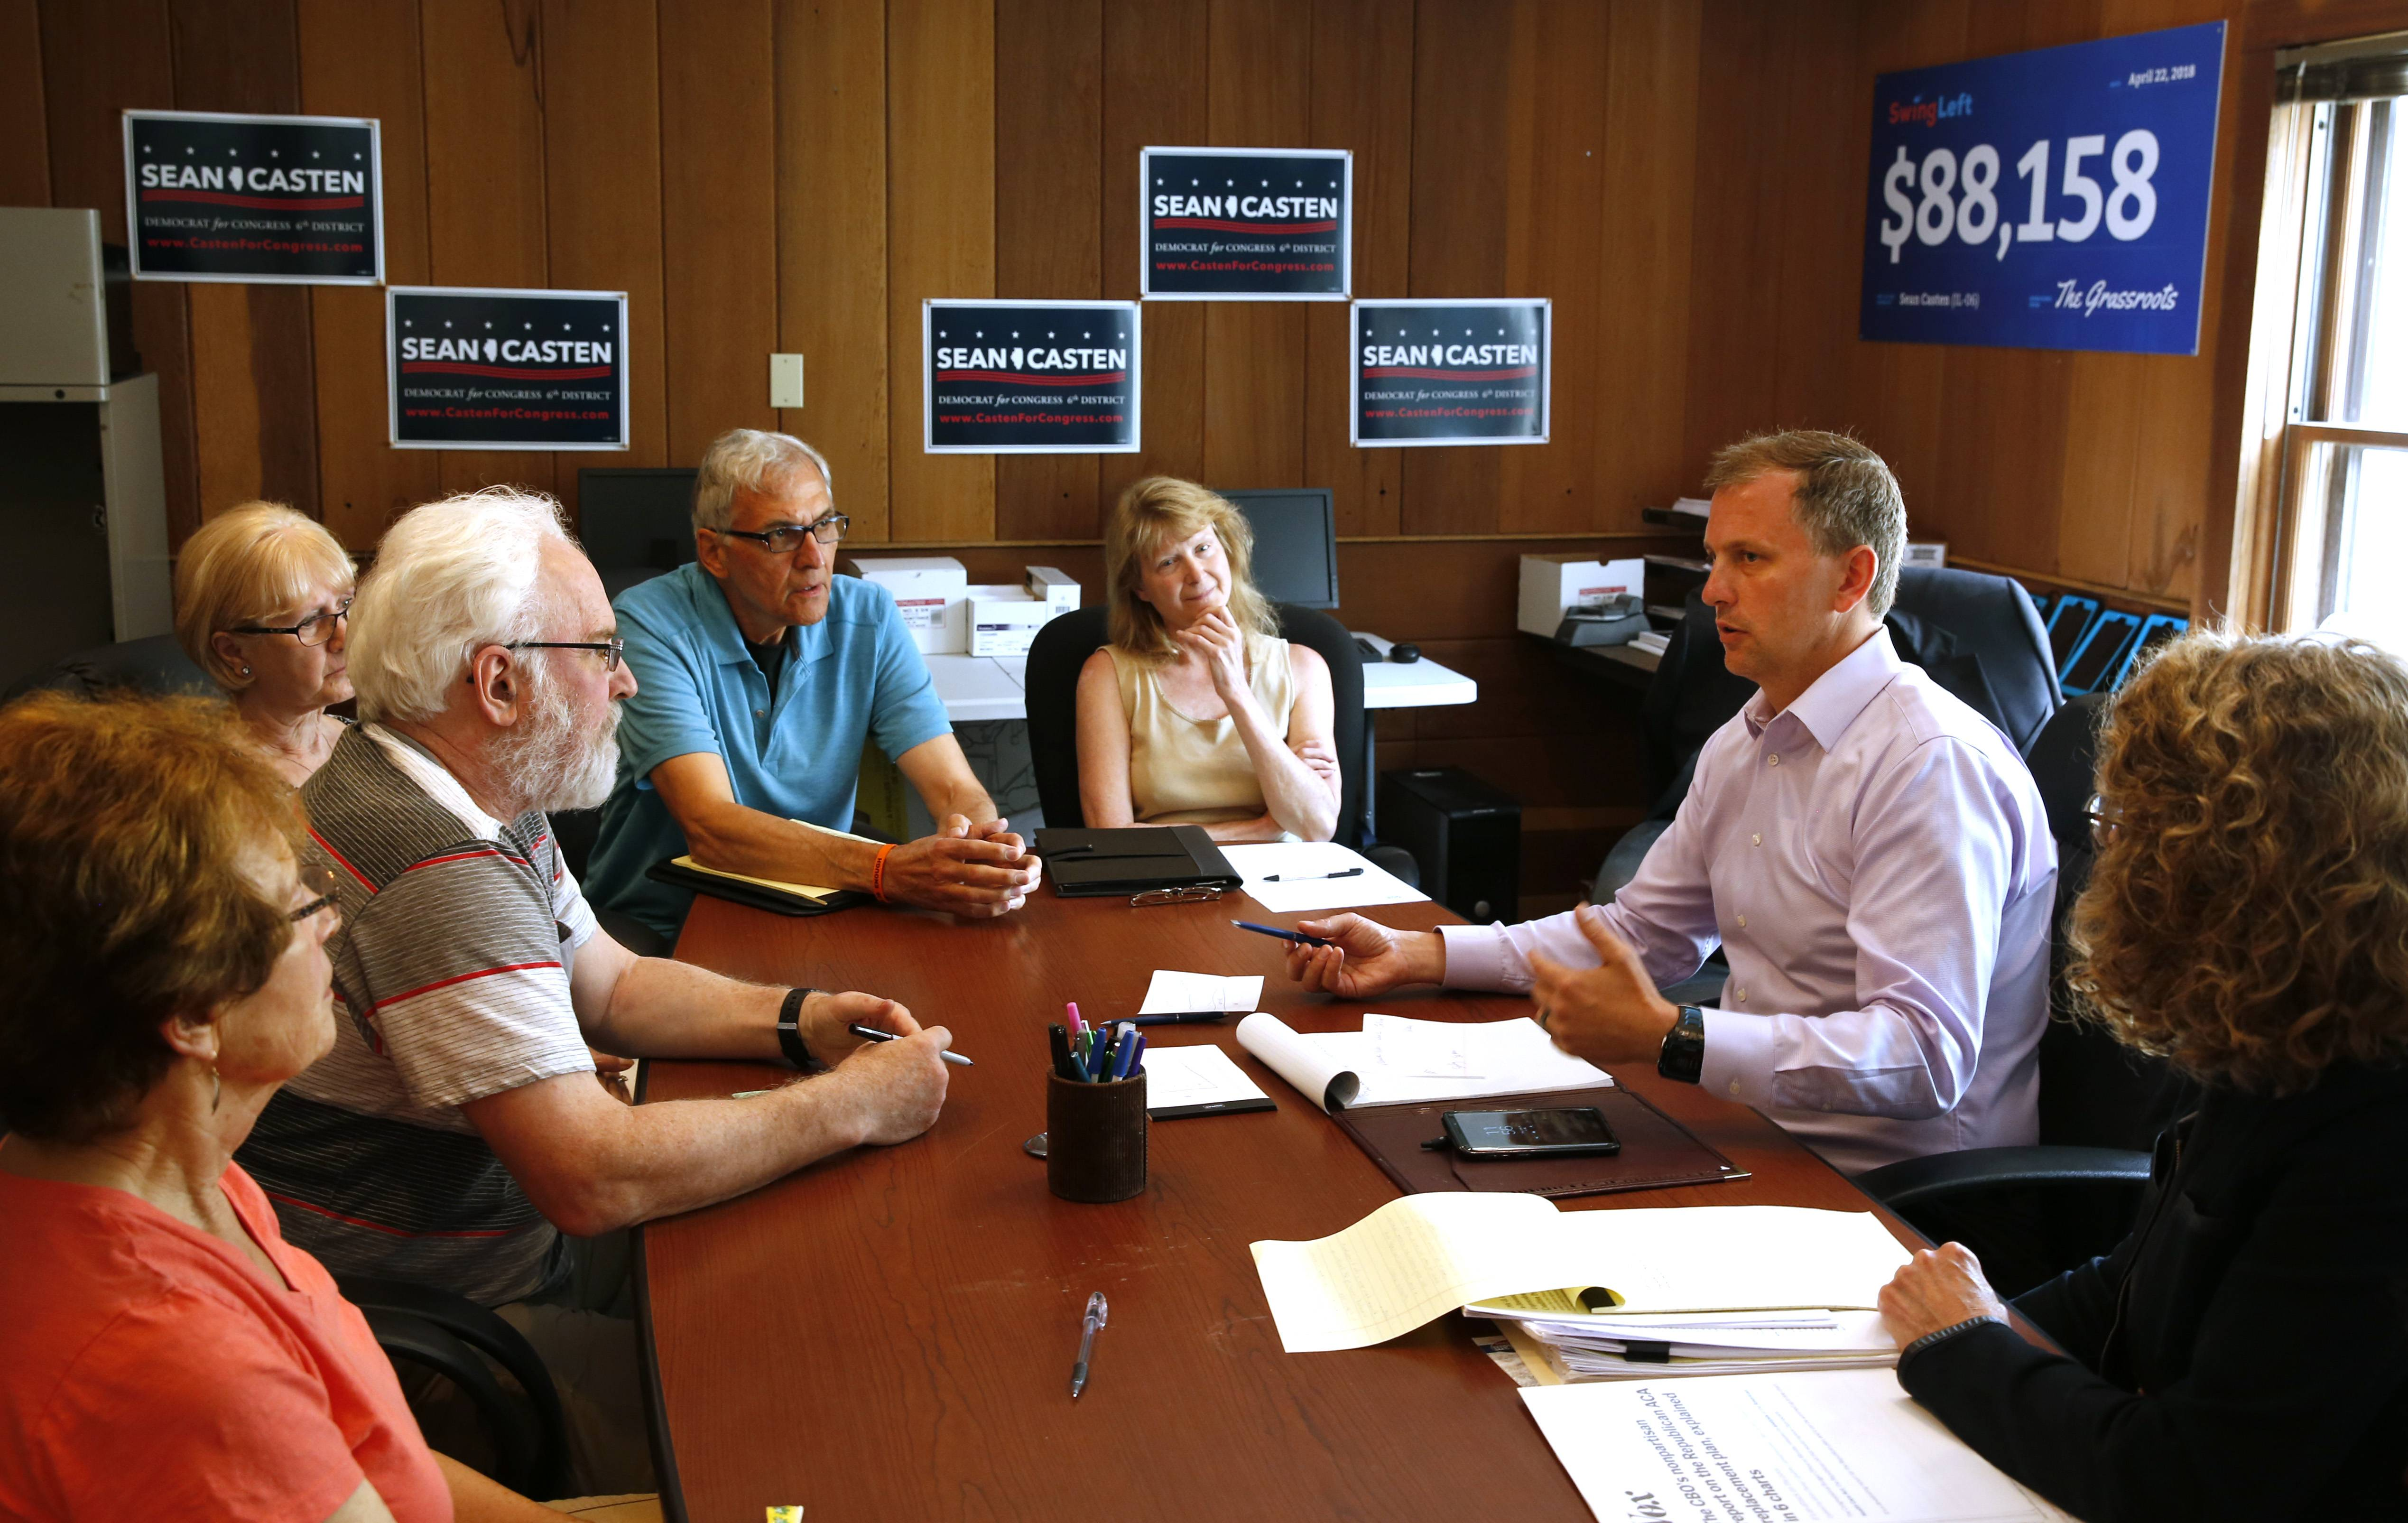 Sean Casten, right, the Democratic candidate for the 6th U.S. Congressional District seat, talks about health care with members of a constituent group called West Indivisible Suburban Engage.